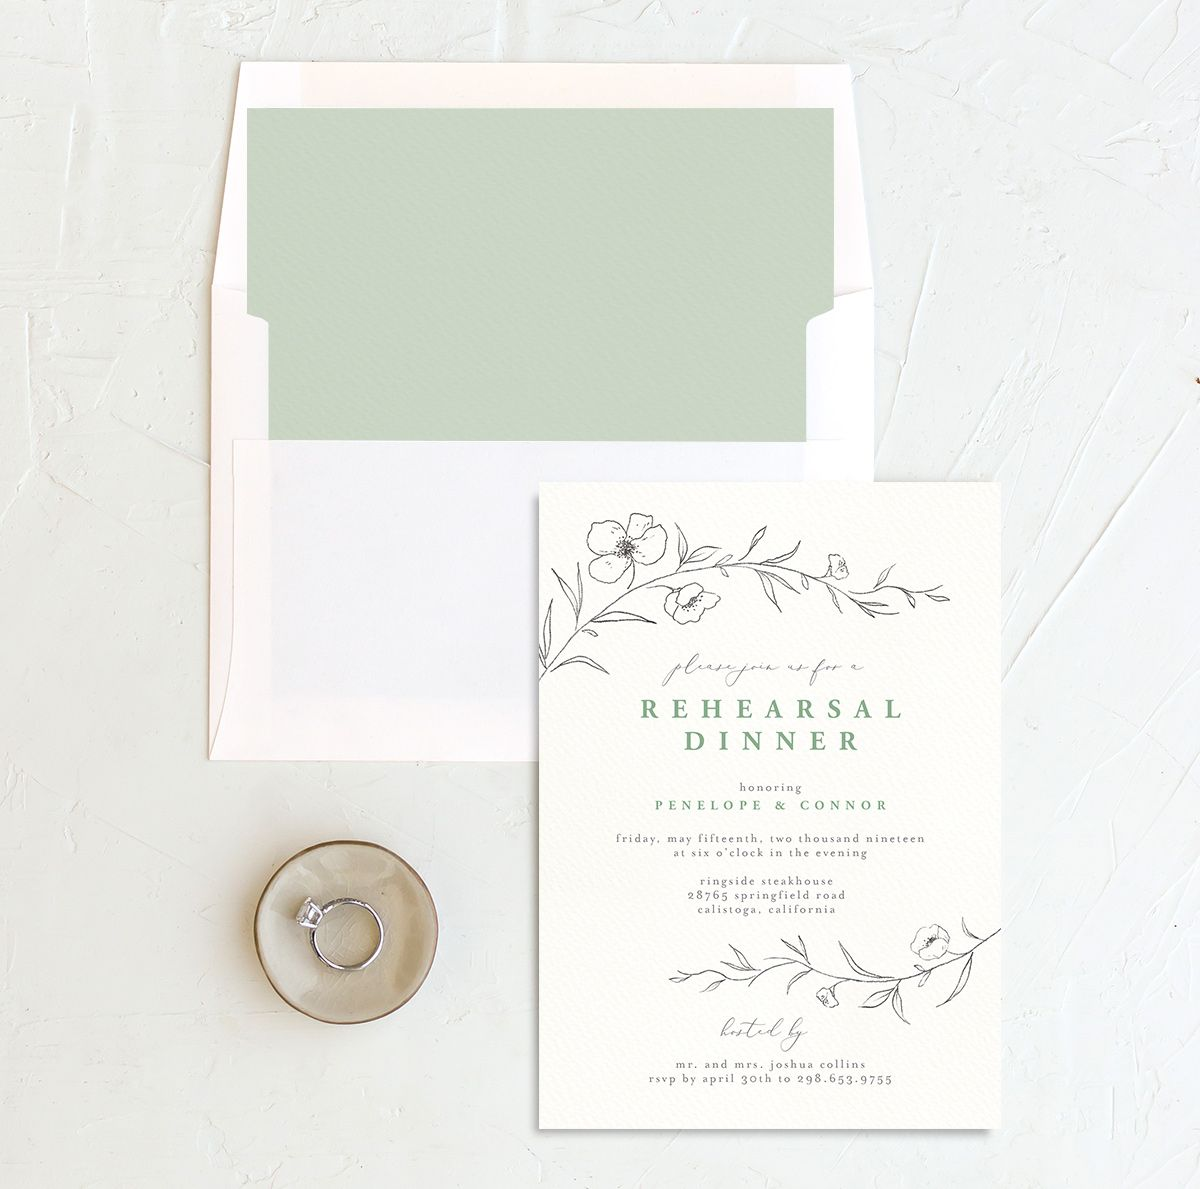 graceful botanical rehearsal dinner invitation in green with envelope liner